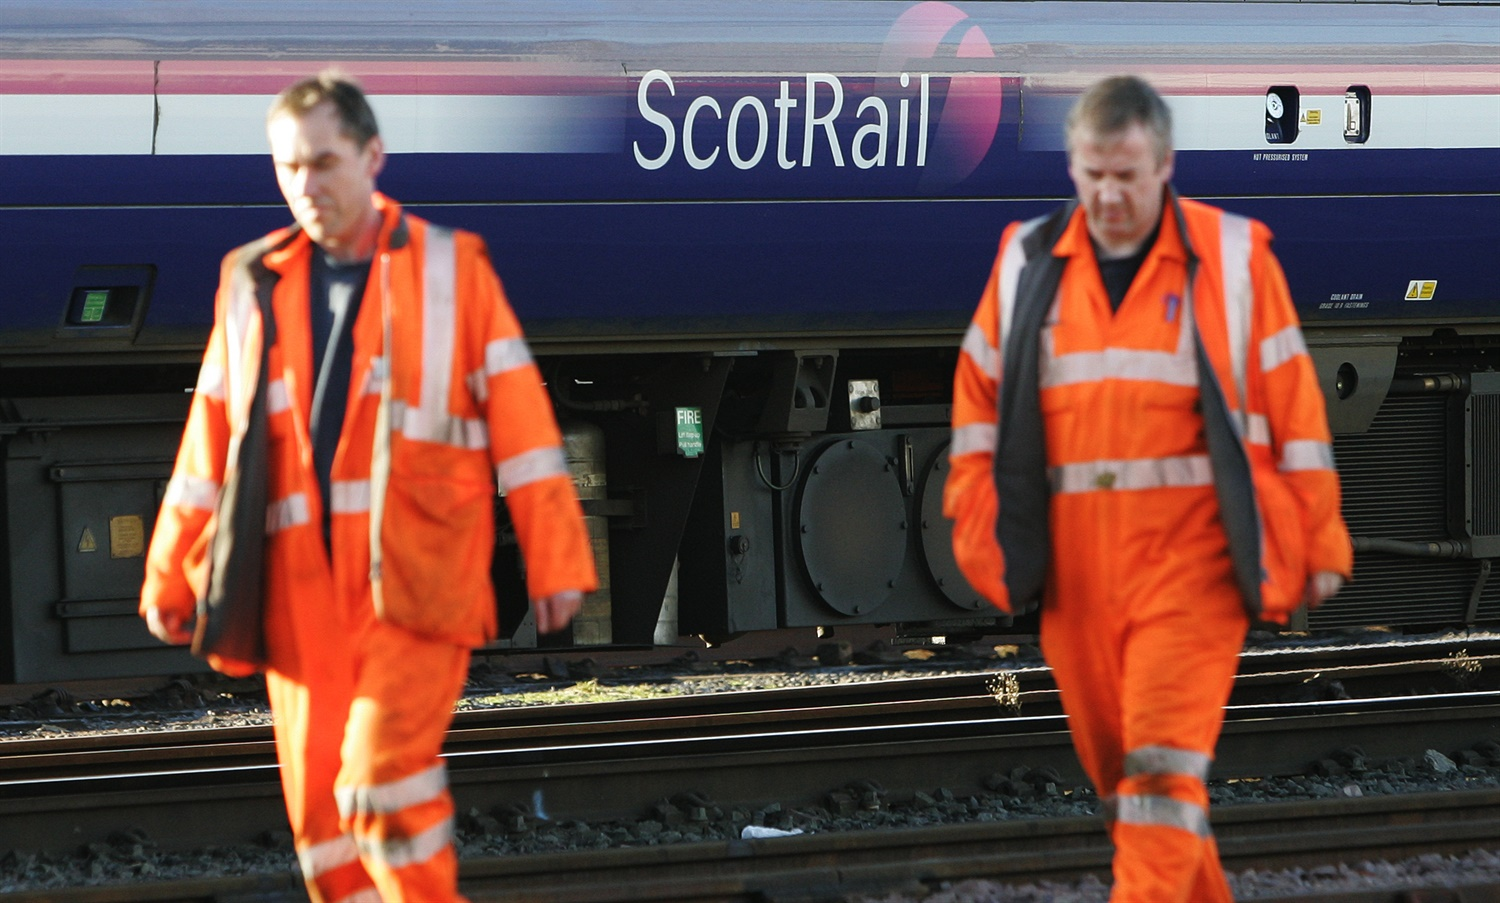 ScotRail MD in discussions with Aberdeen MSP over rail performance issues